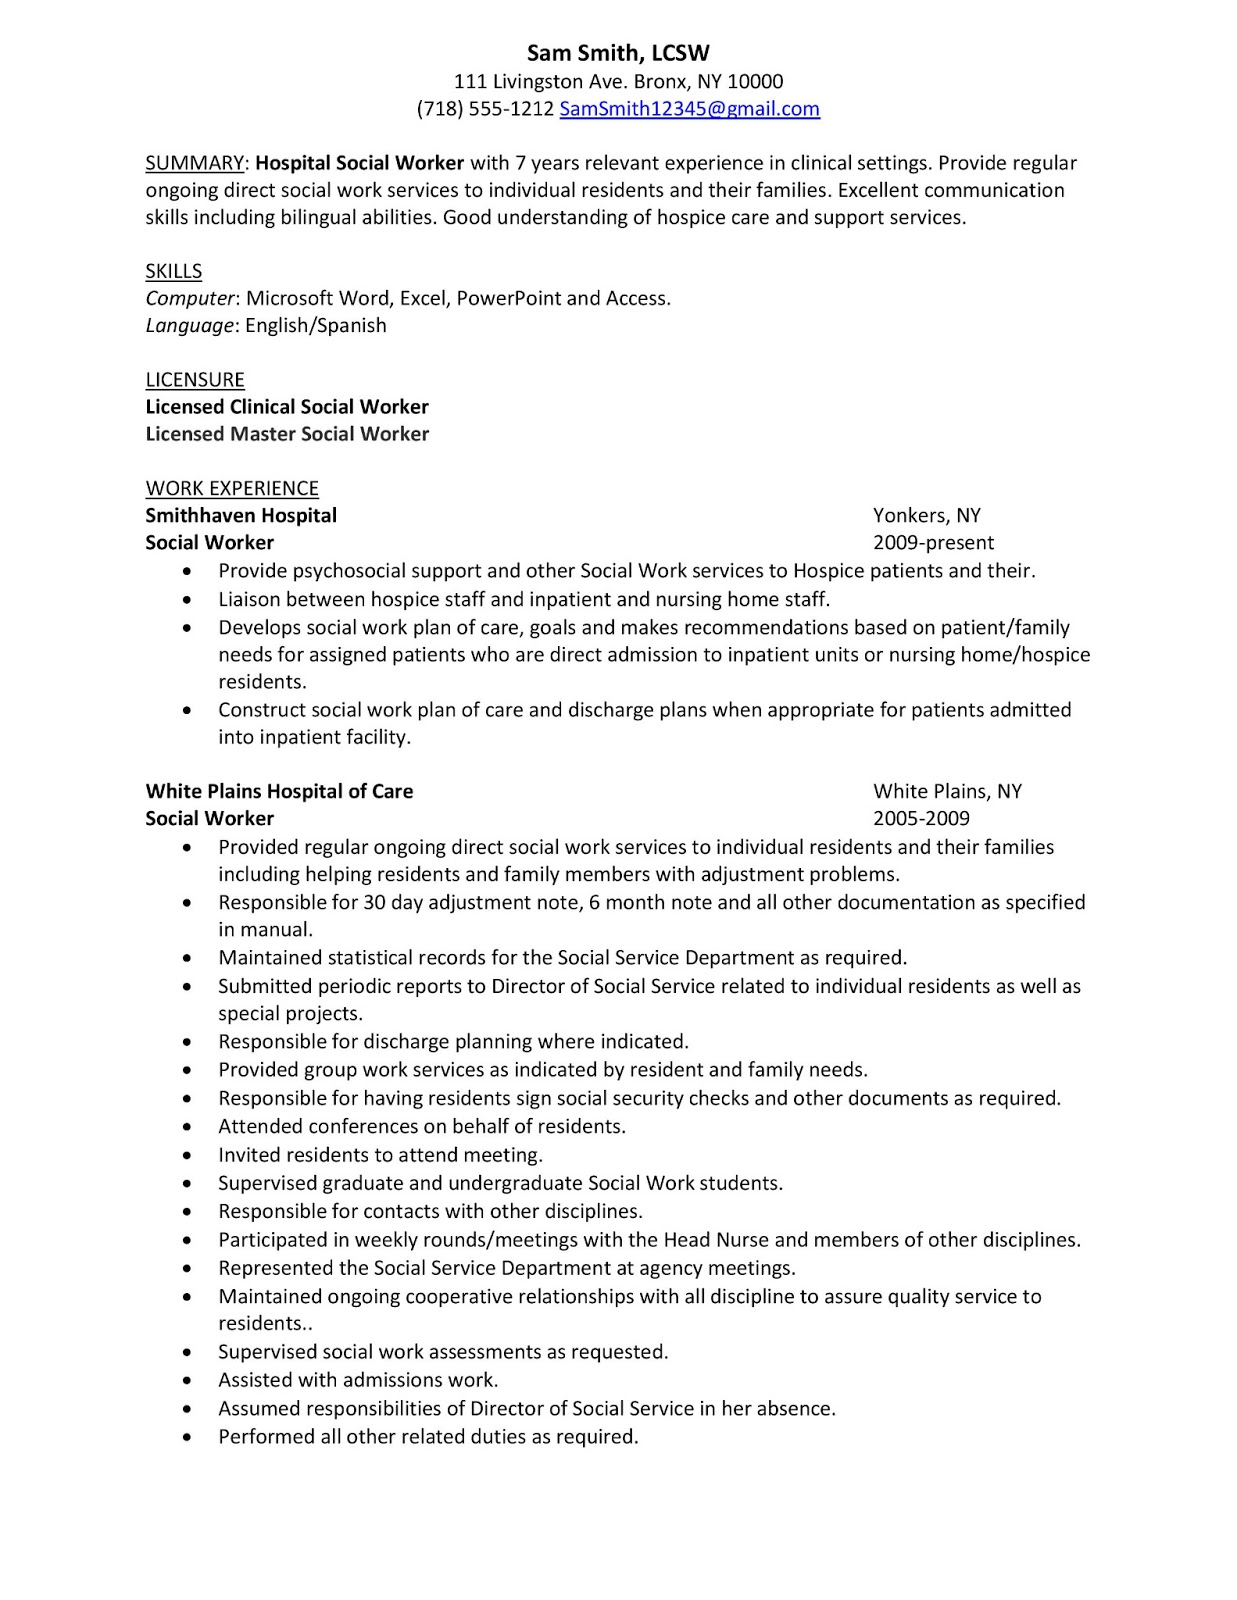 Sample Resume: Hospital Social Worker | Career Advice & Pro ...